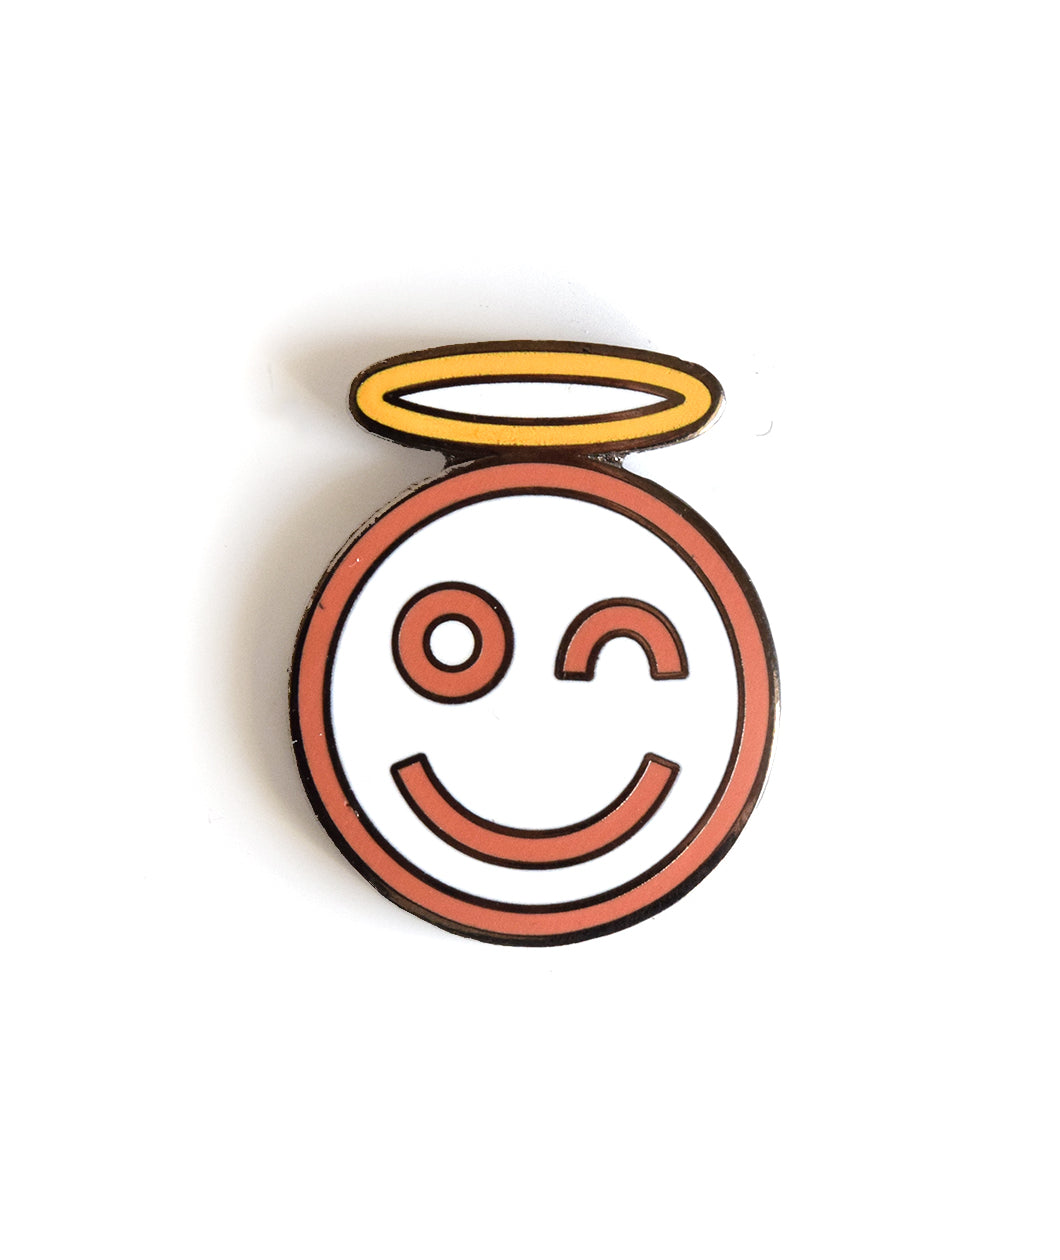 Good Christian Fun Enamel Pin